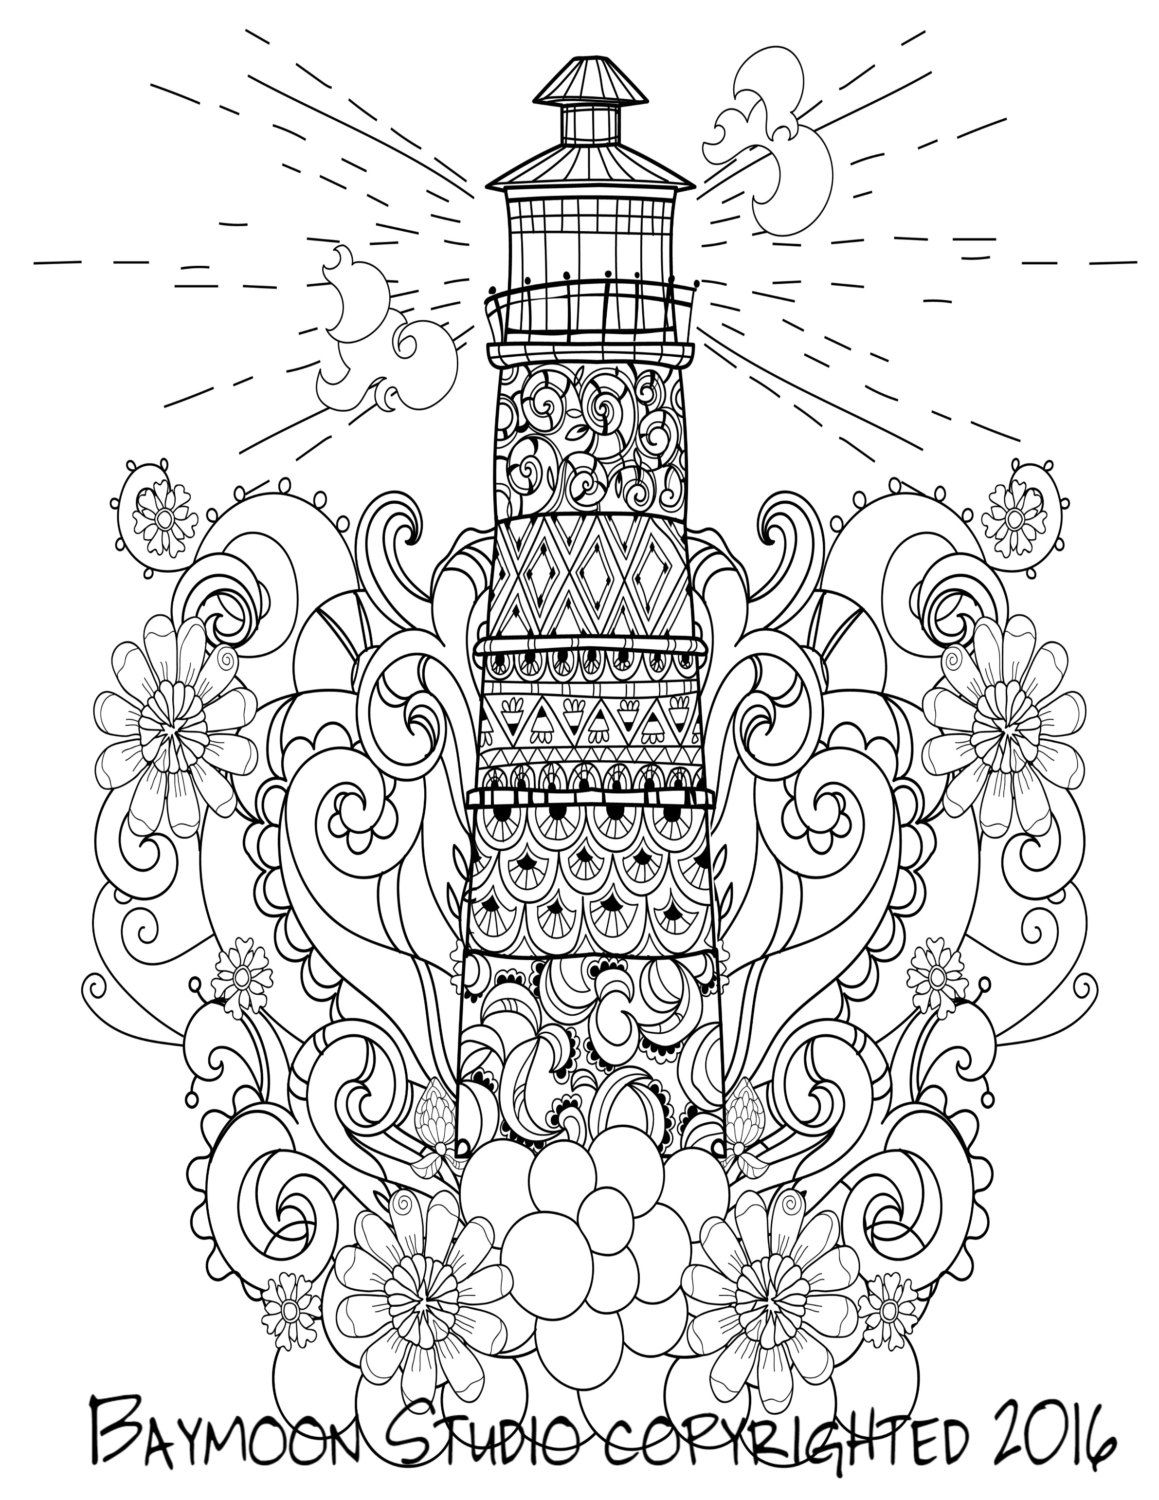 Lighthouse Coloring Page Printable Coloring Pages By Baymoonstudio